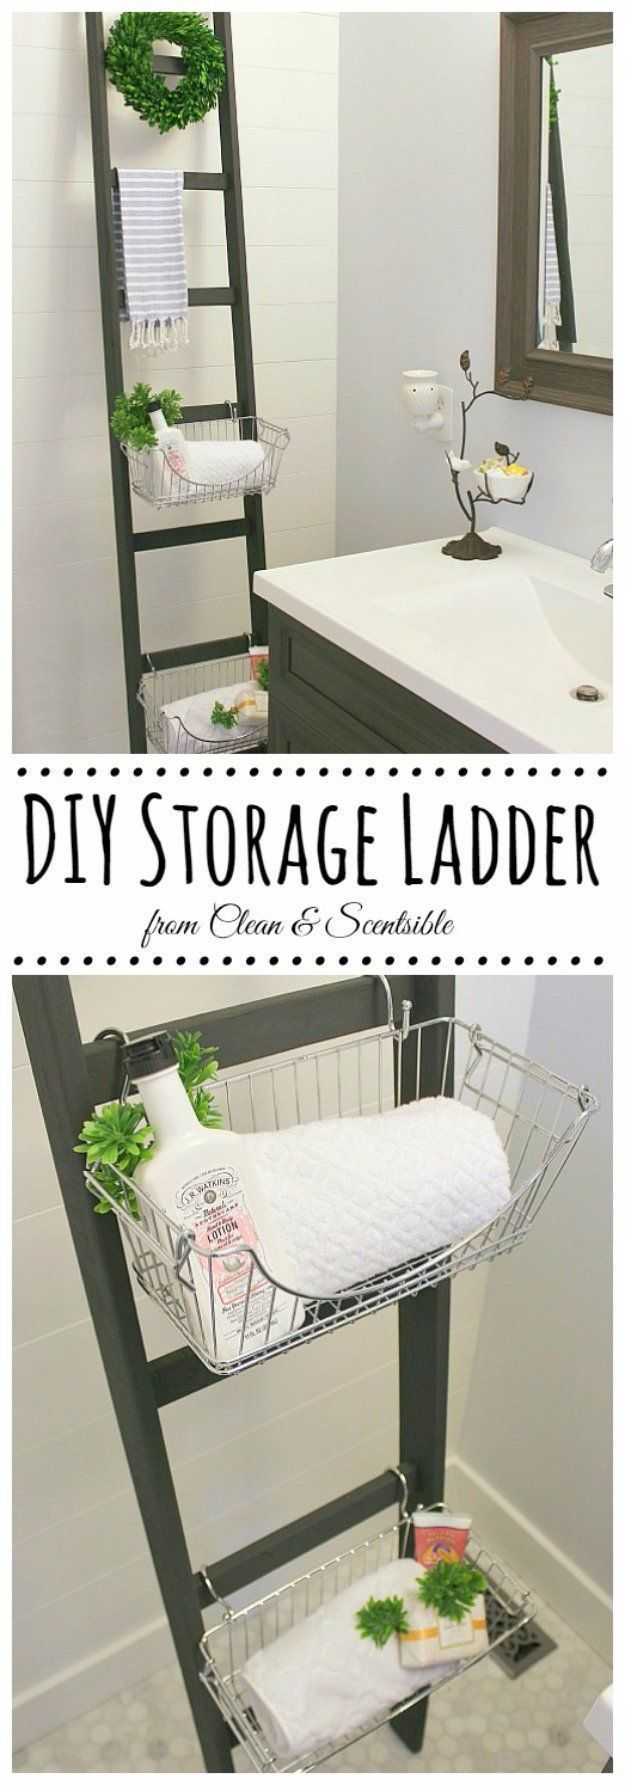 Photo of DIY Badezimmer Dekor Ideen – DIY Badezimmer Speicherleiter – Cool Do It Yourself…